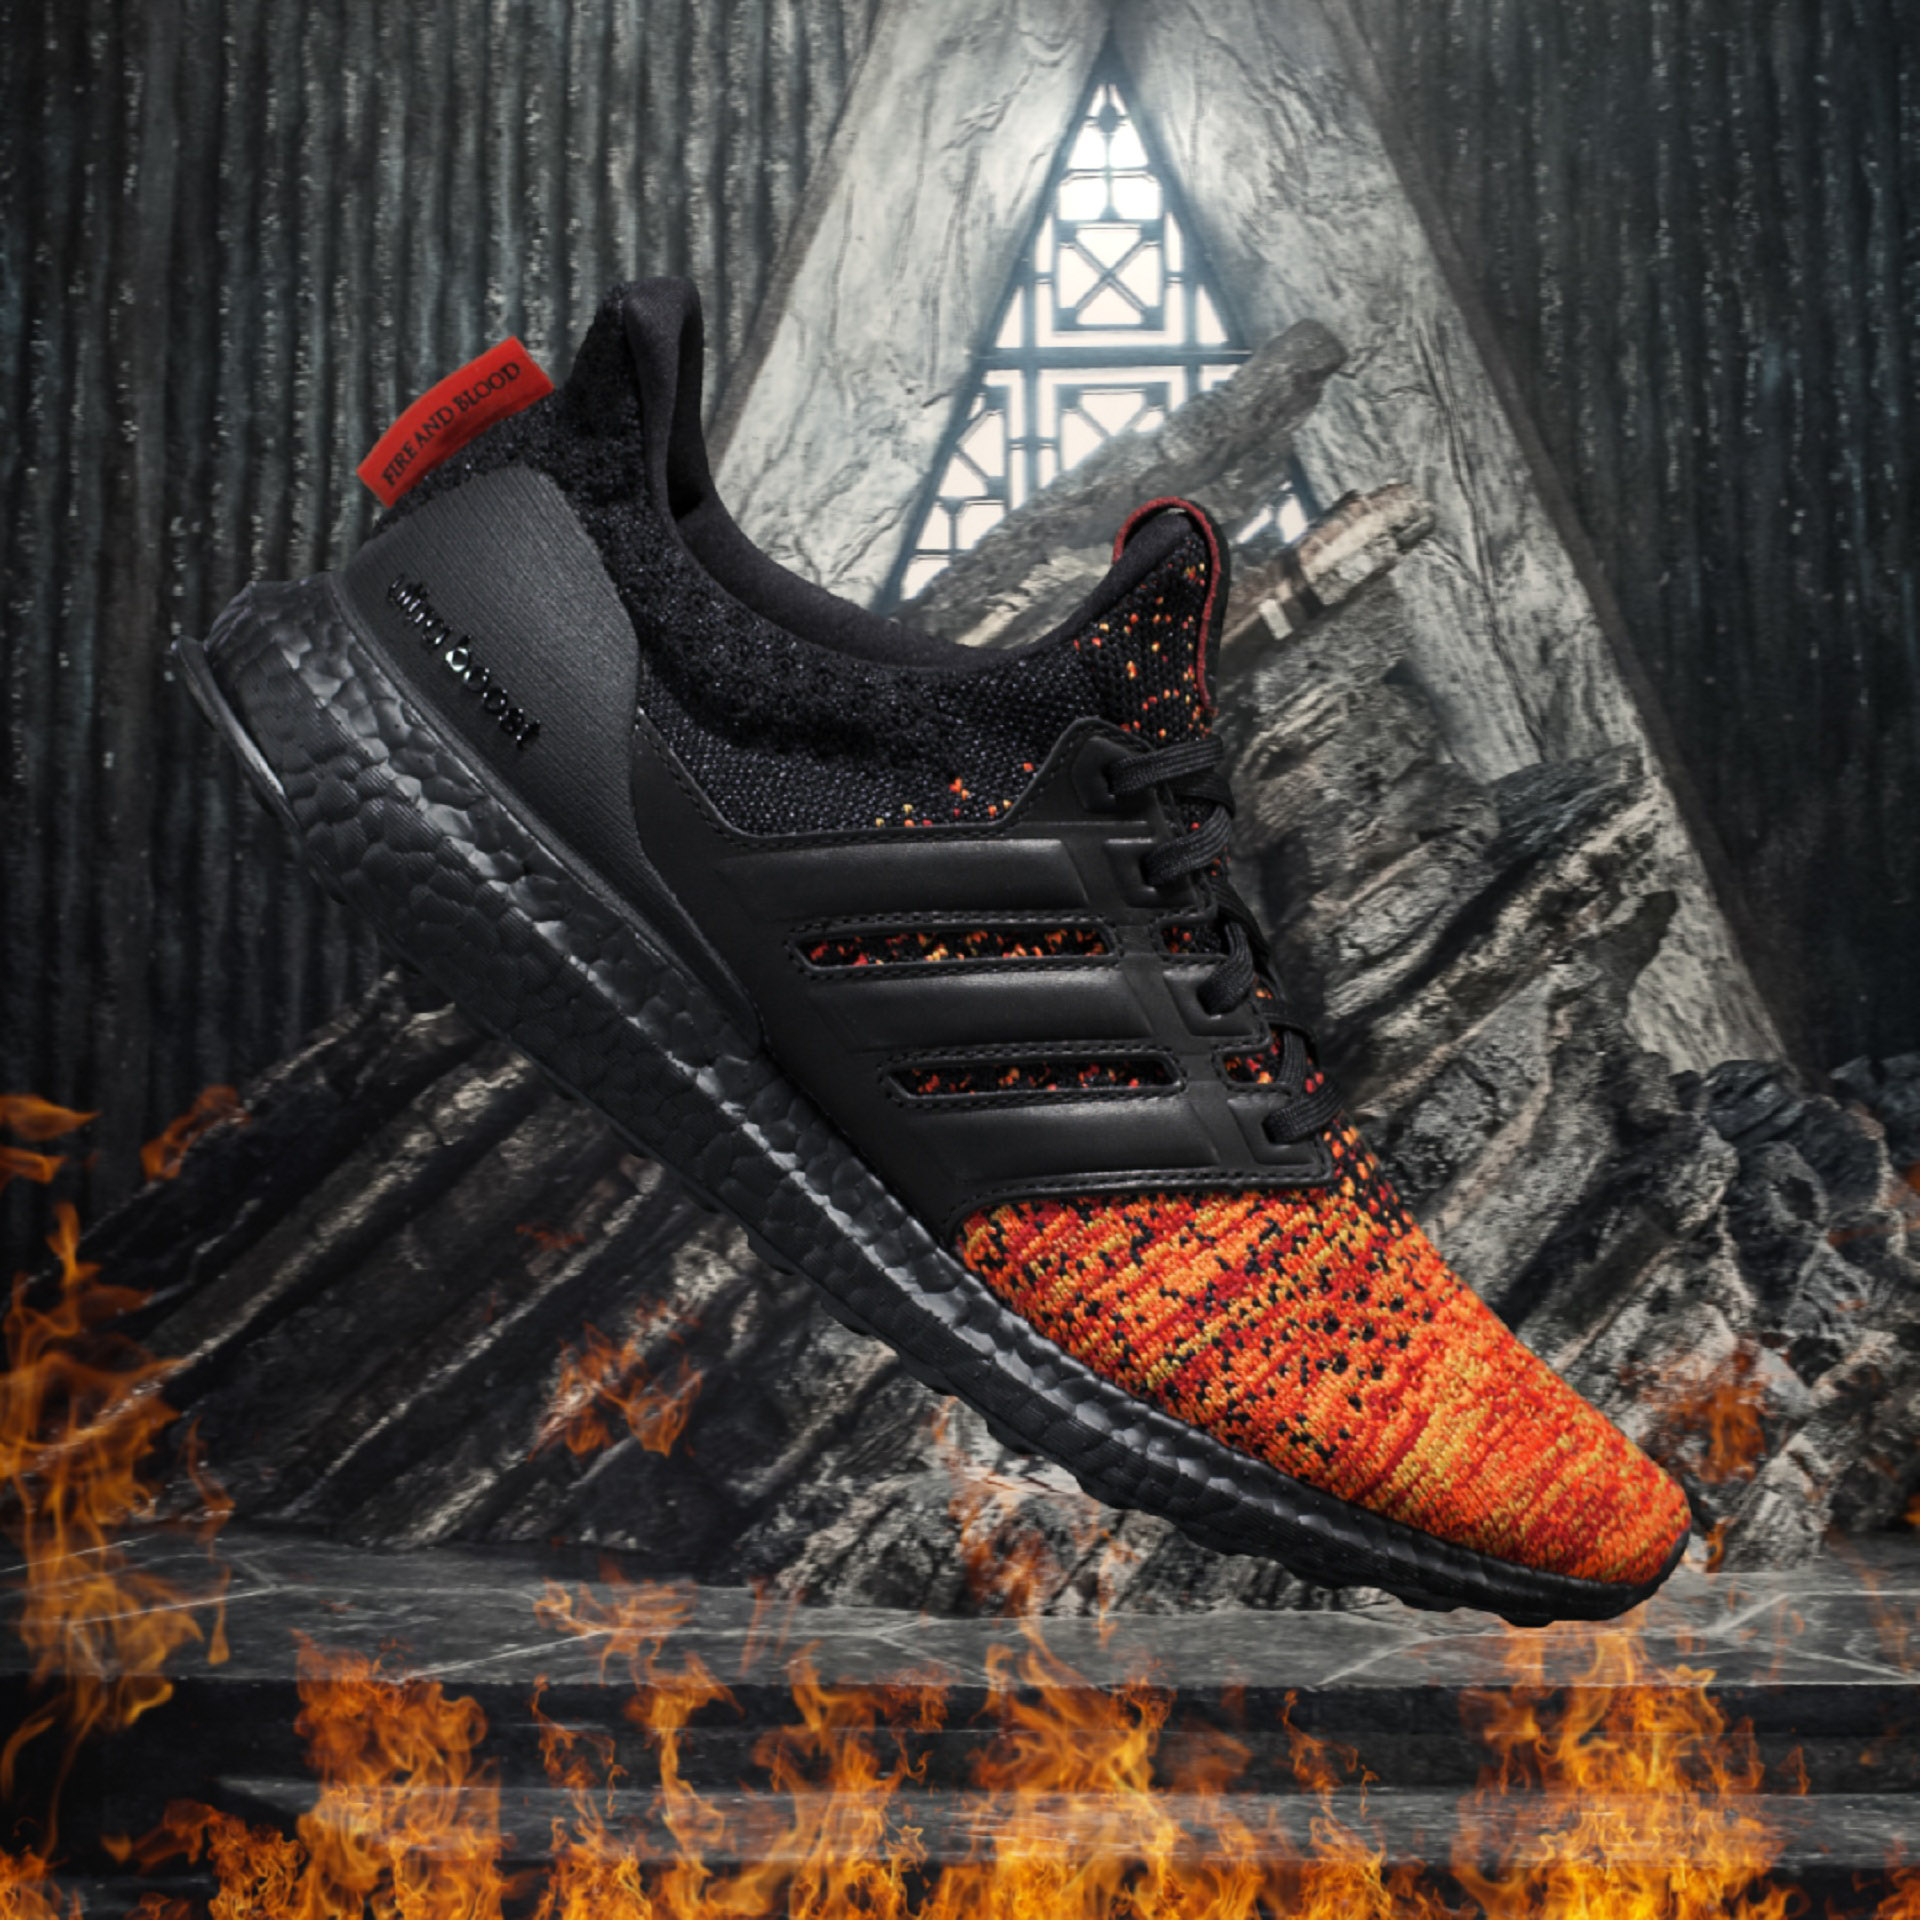 Game of Thrones x adidas UltraBOOST 9